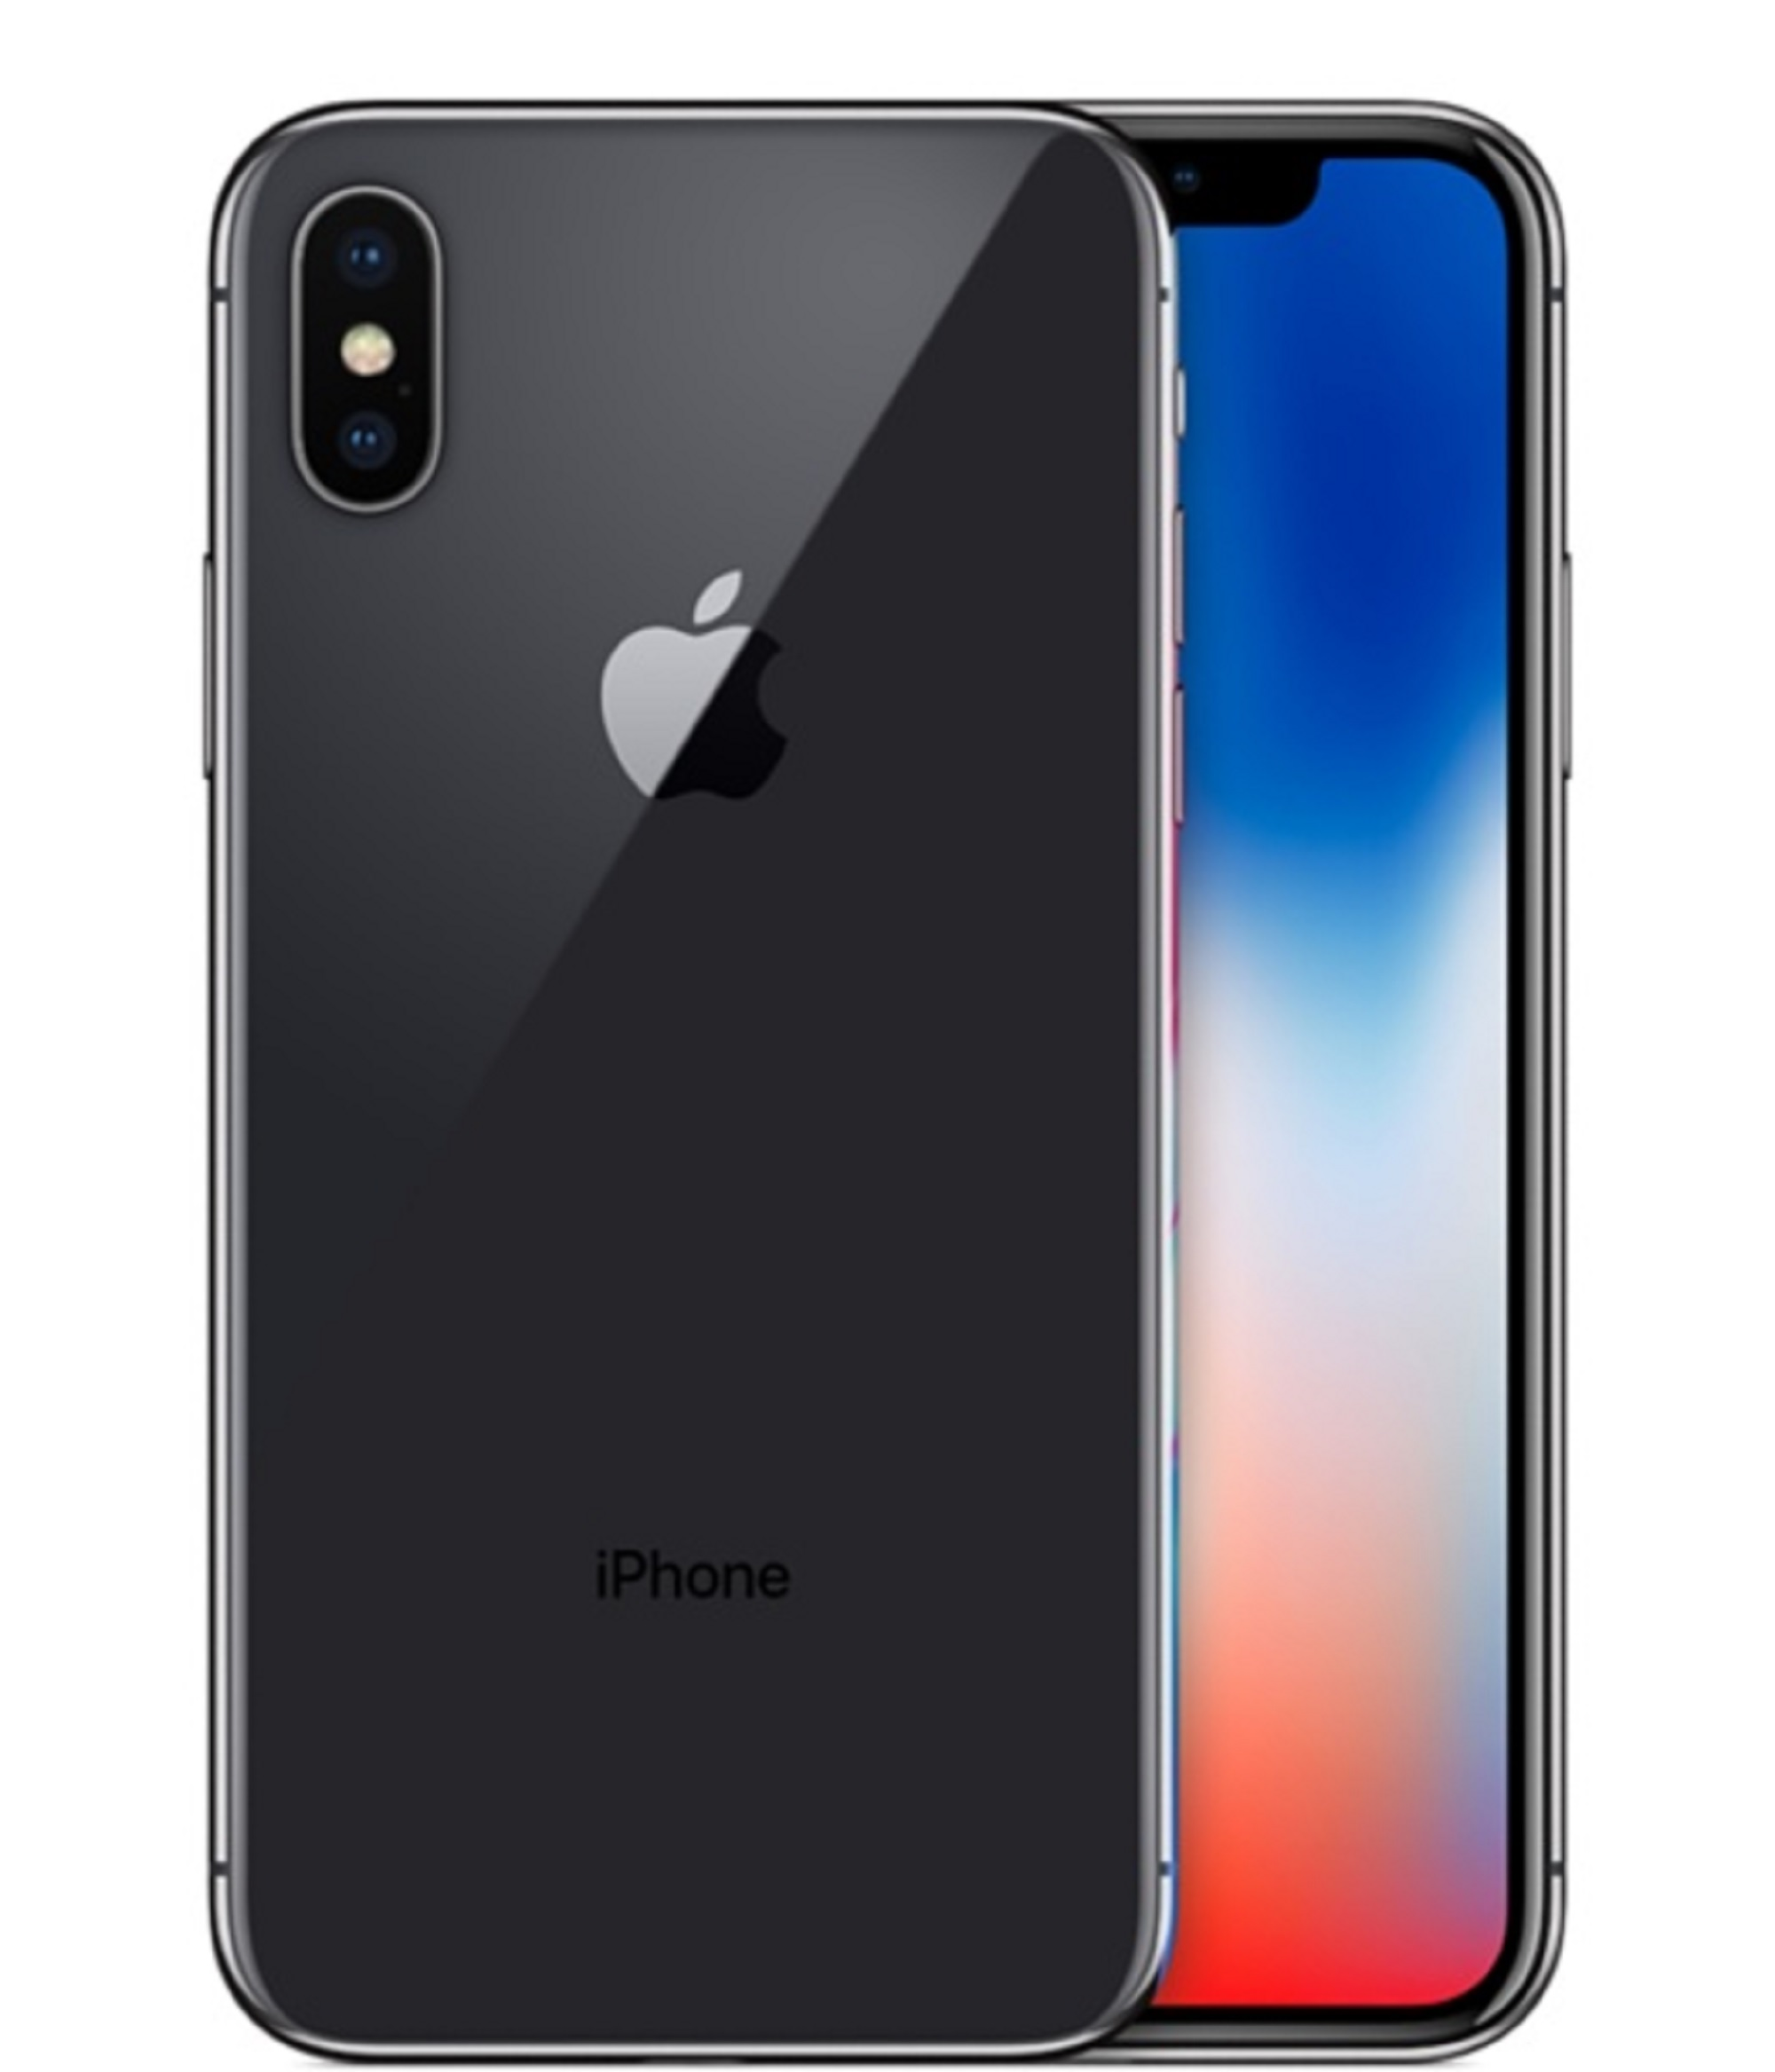 thumbnail 10 - Apple iPhone X 64GB Factory Unlocked Smartphone